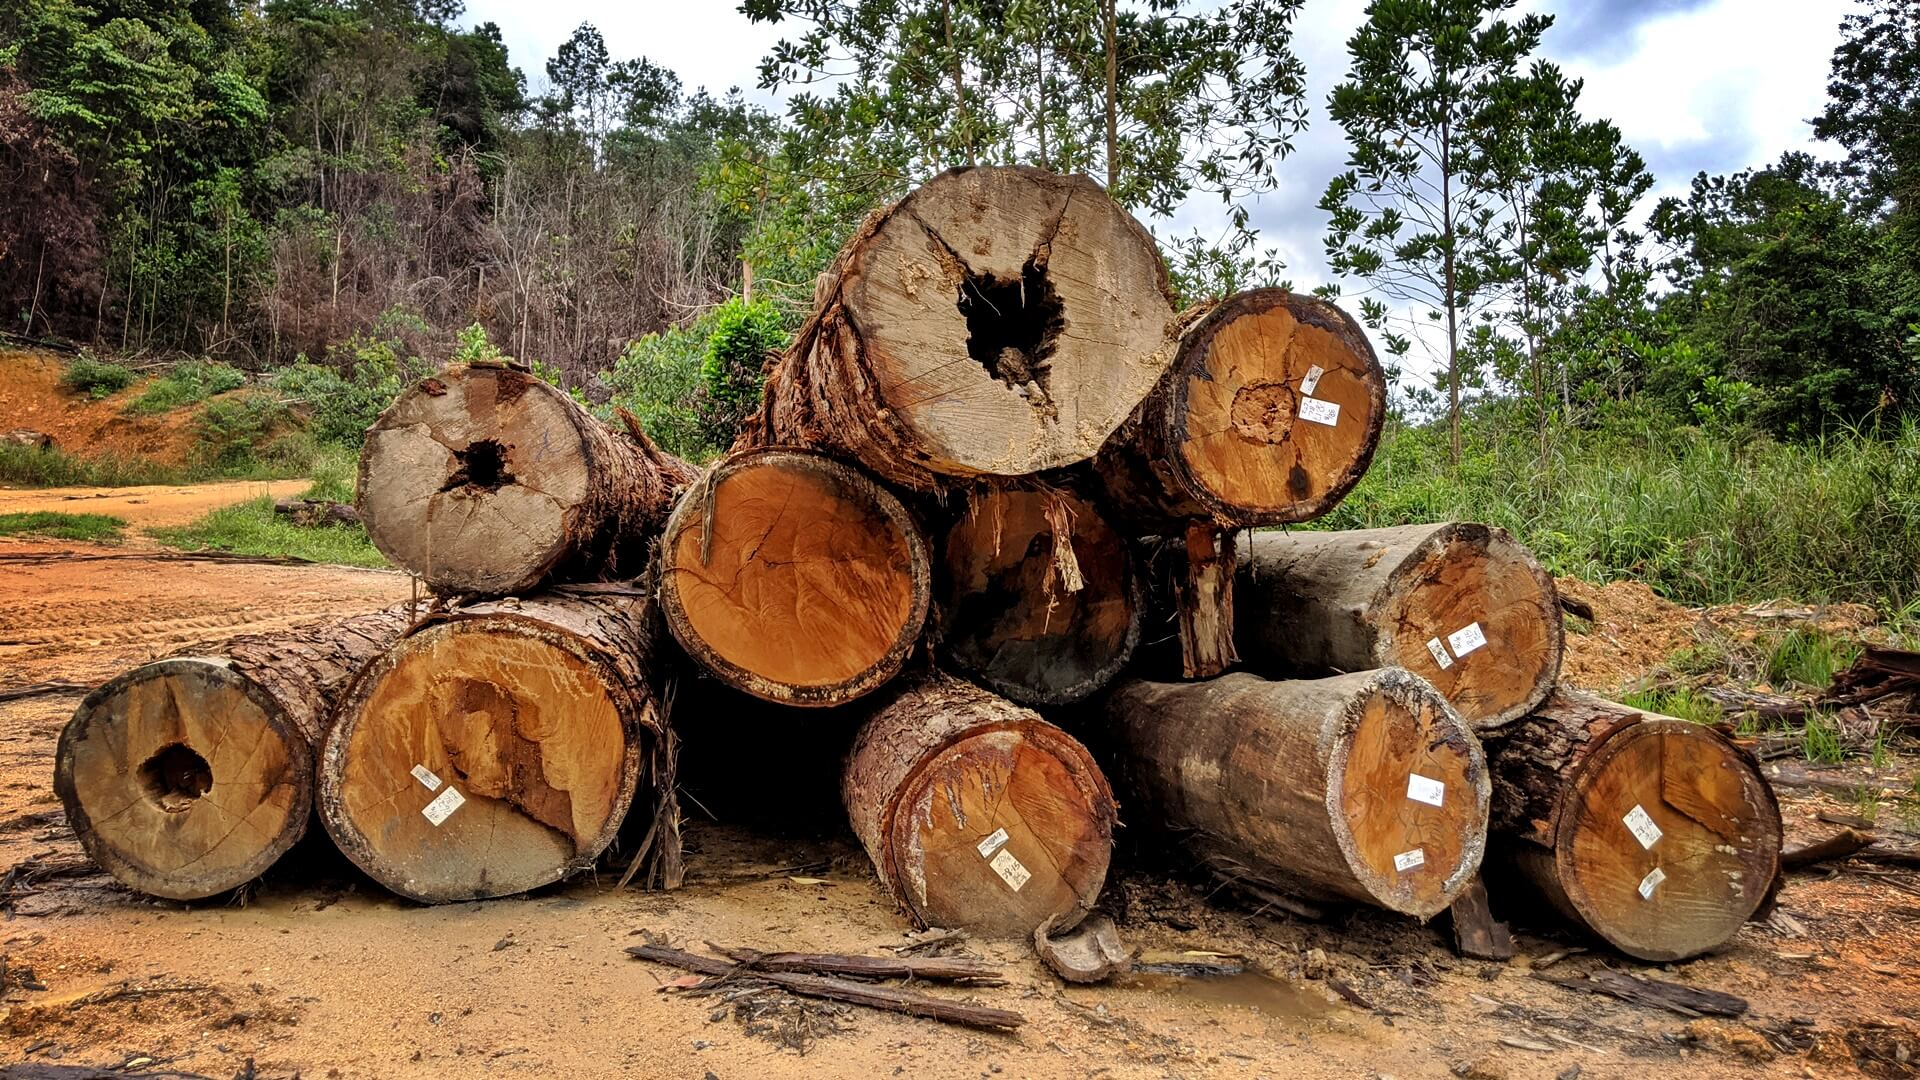 Logs harvested in a forest reserve in Johor, 2020. These were logged according to sustainable forestry rules.